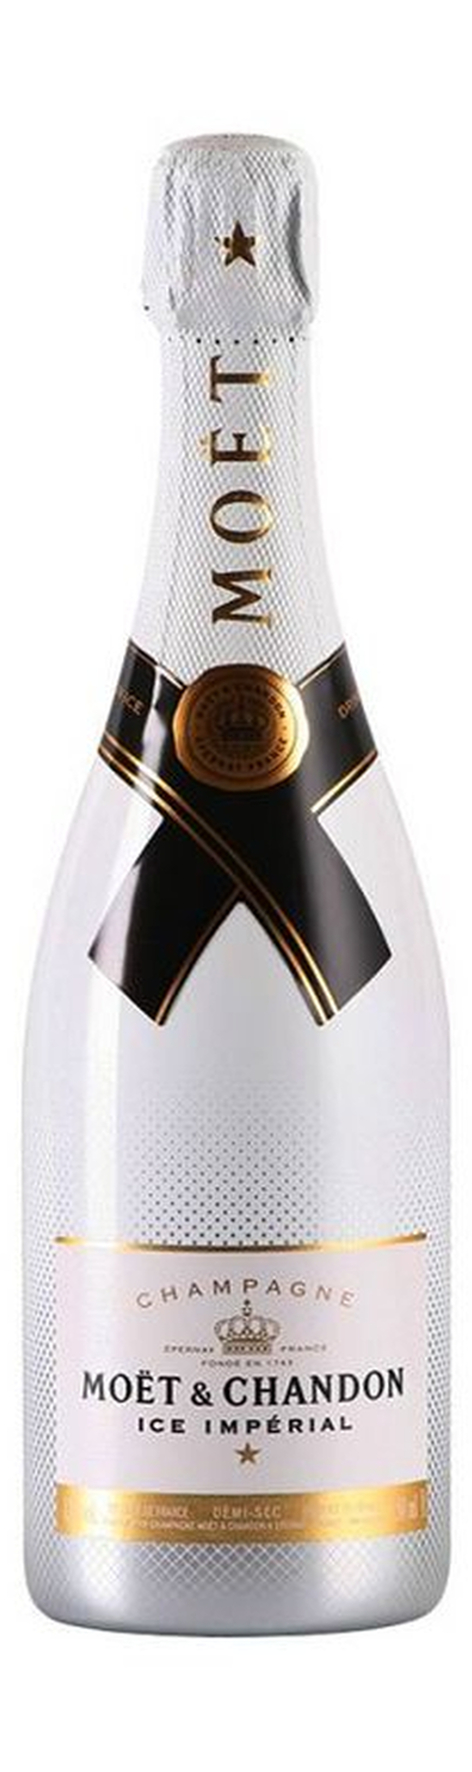 moet en chandon ice